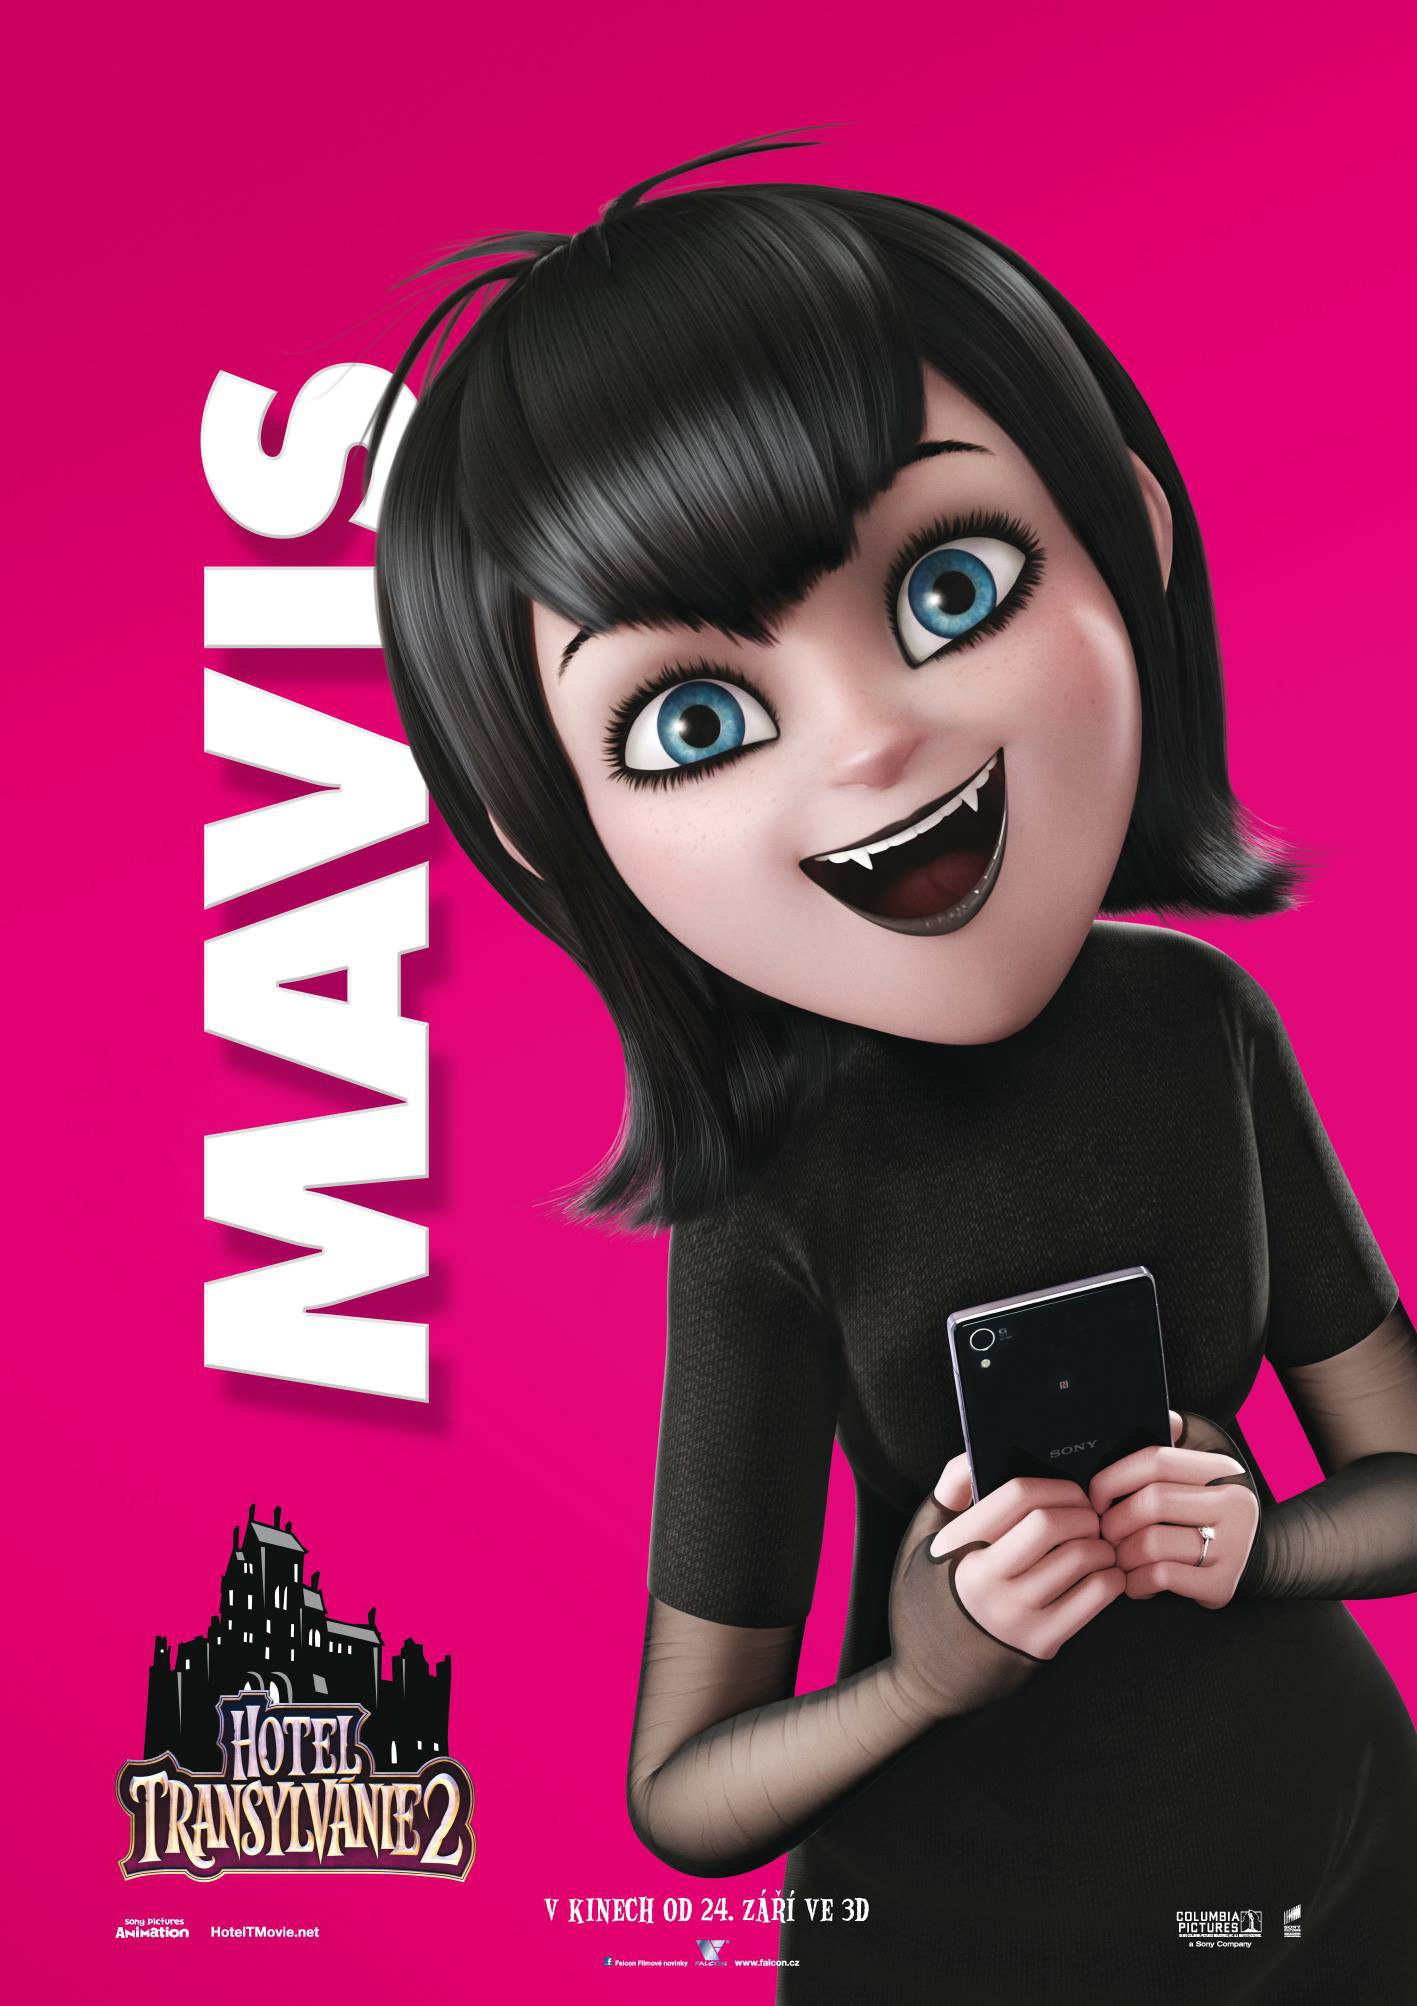 Image hotel transylvania 2 character posters for Character hotel